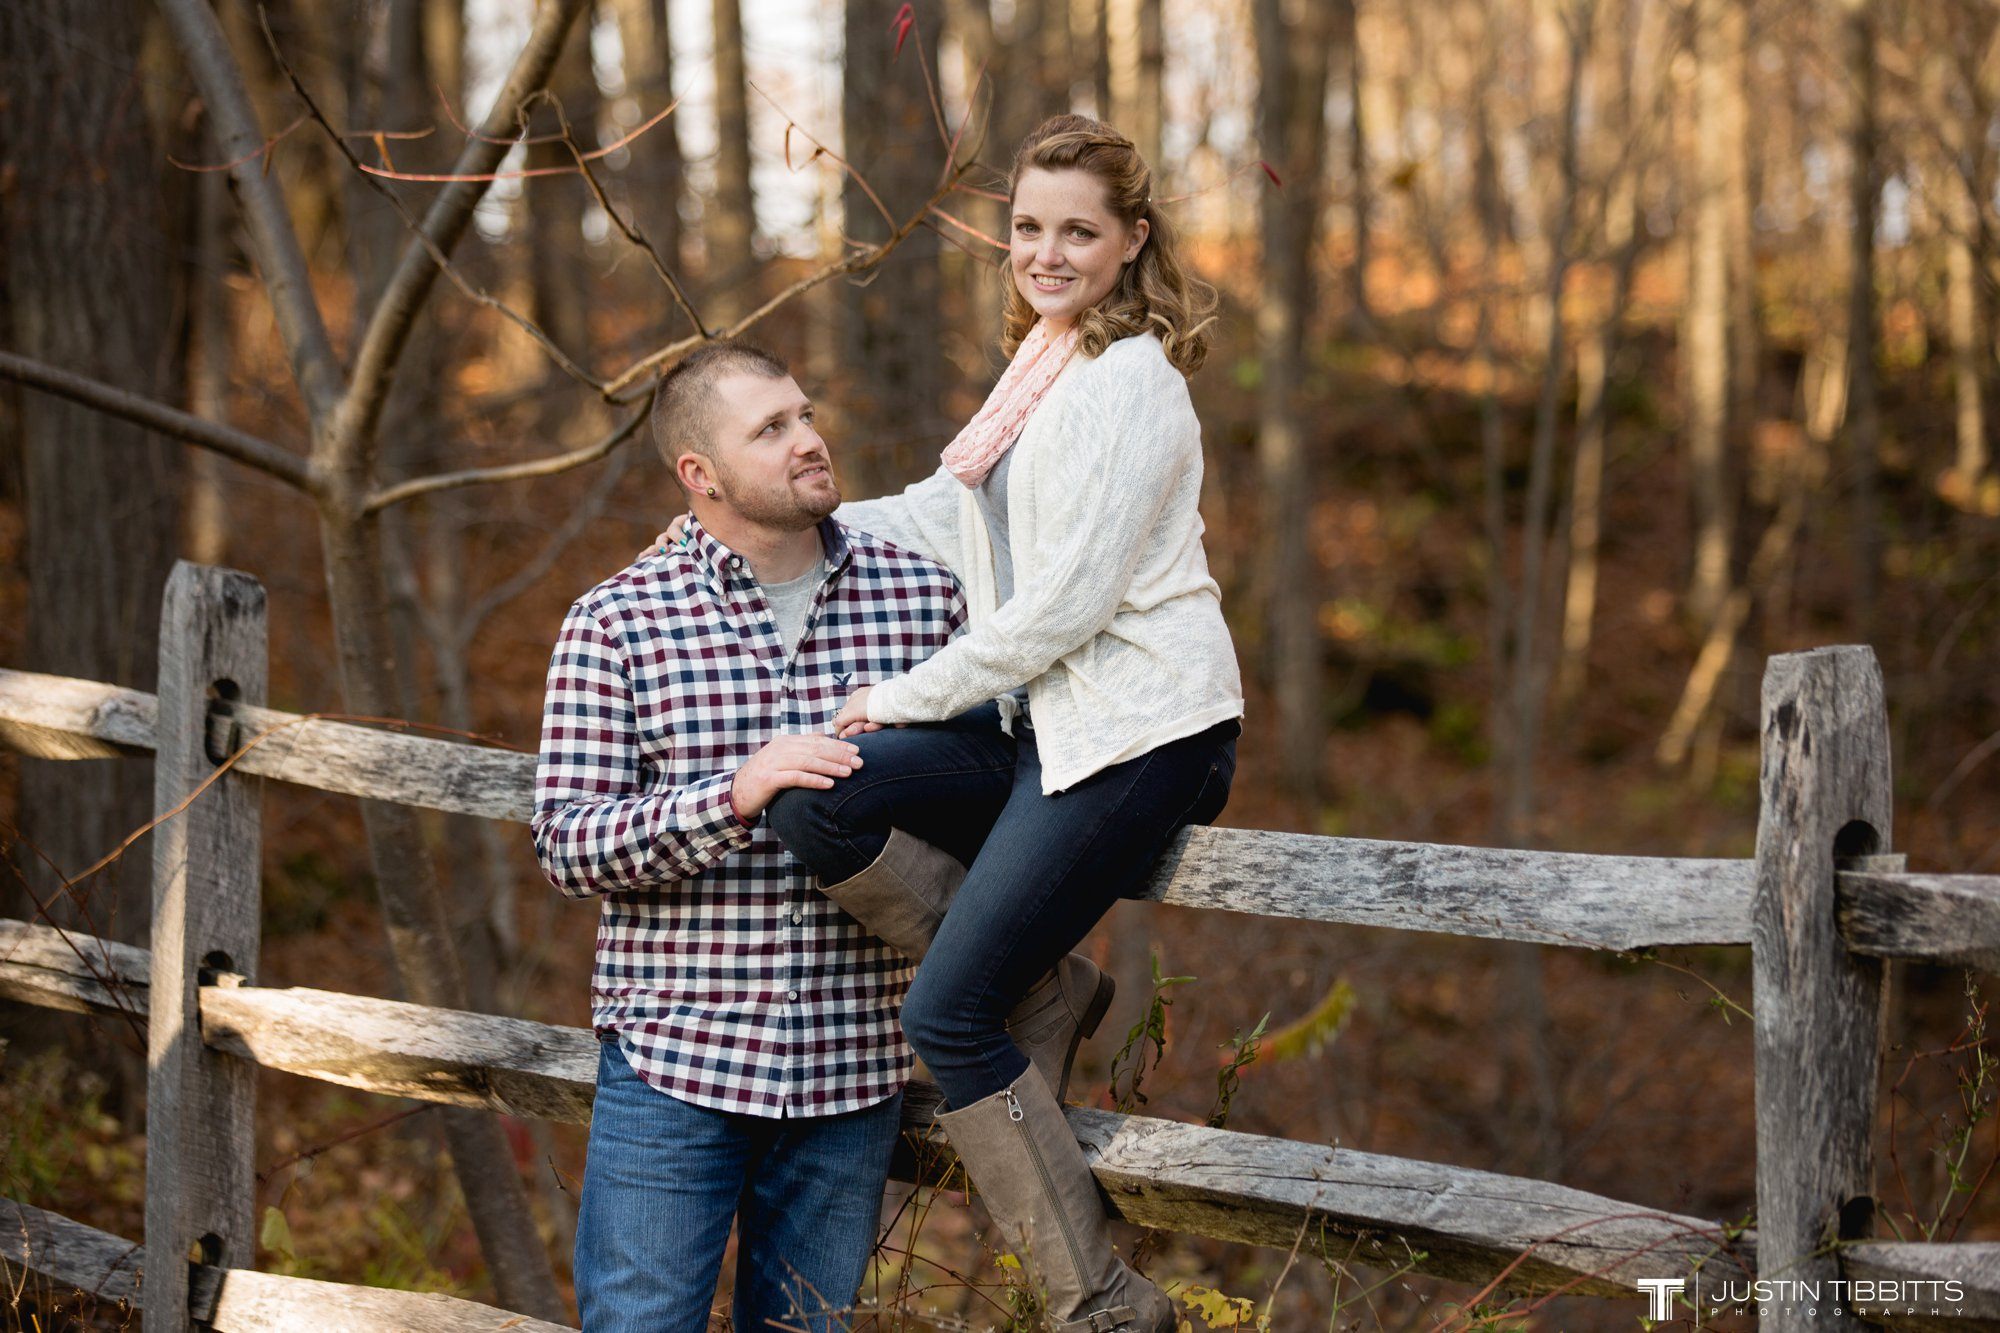 Justin Tibbitts Photography Ashlee and Steves Thatcher Park, New York Engagement Shoot-73